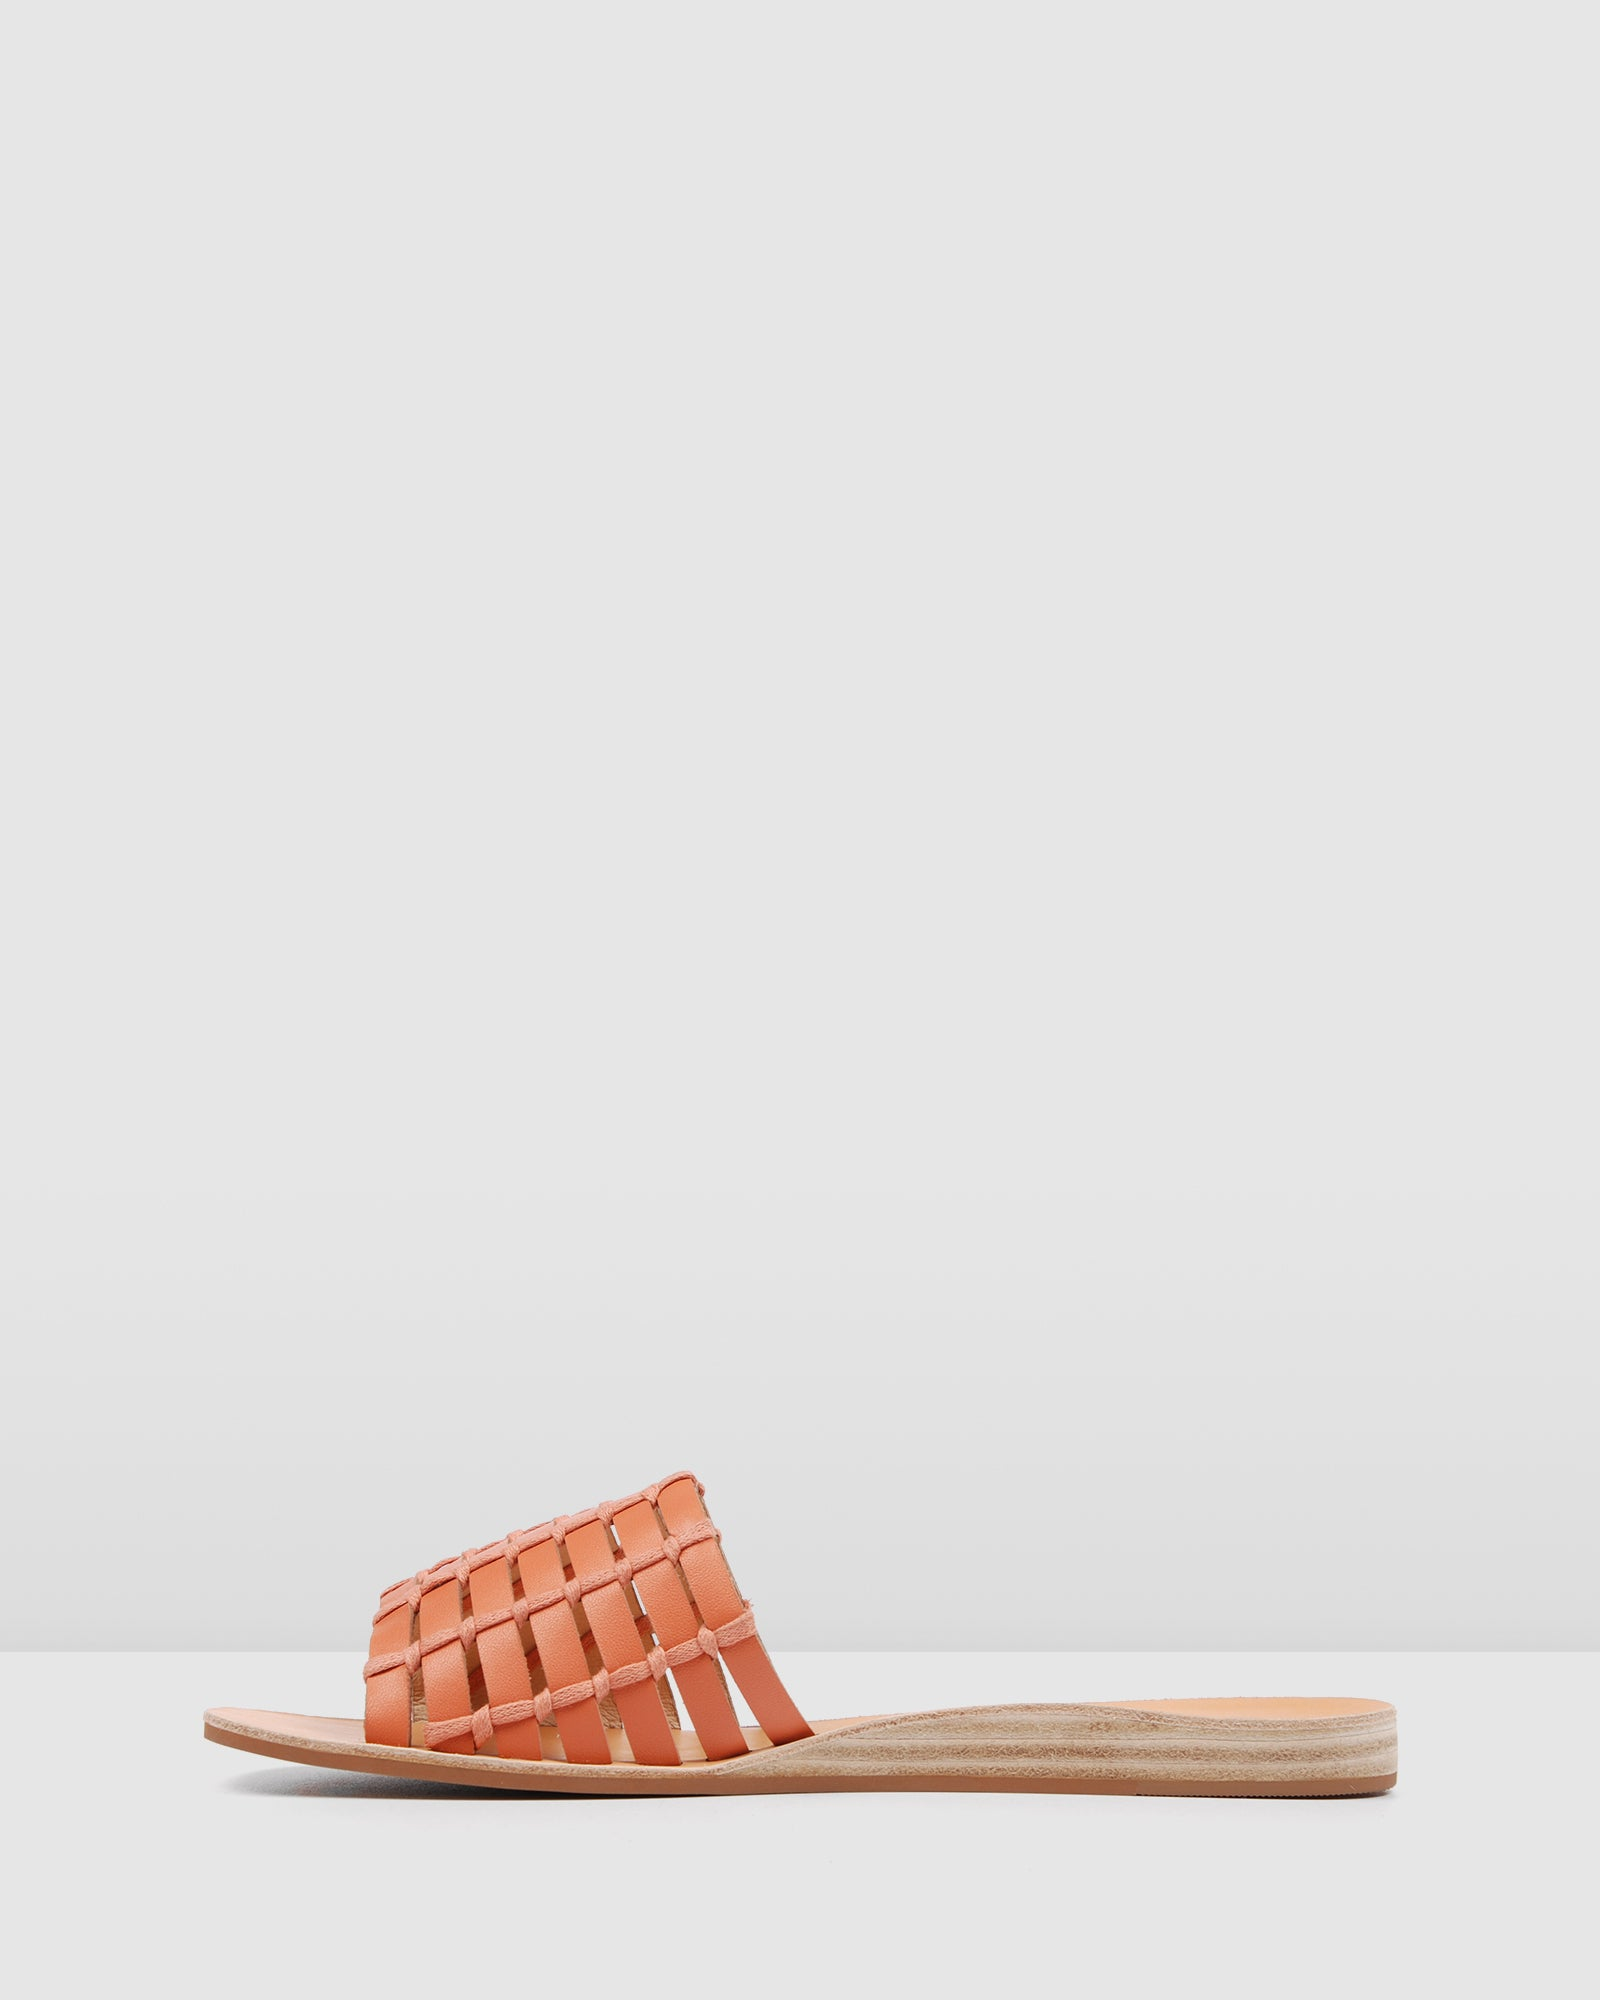 AVA FLAT WEDGE SLIDES CORAL LEATHER